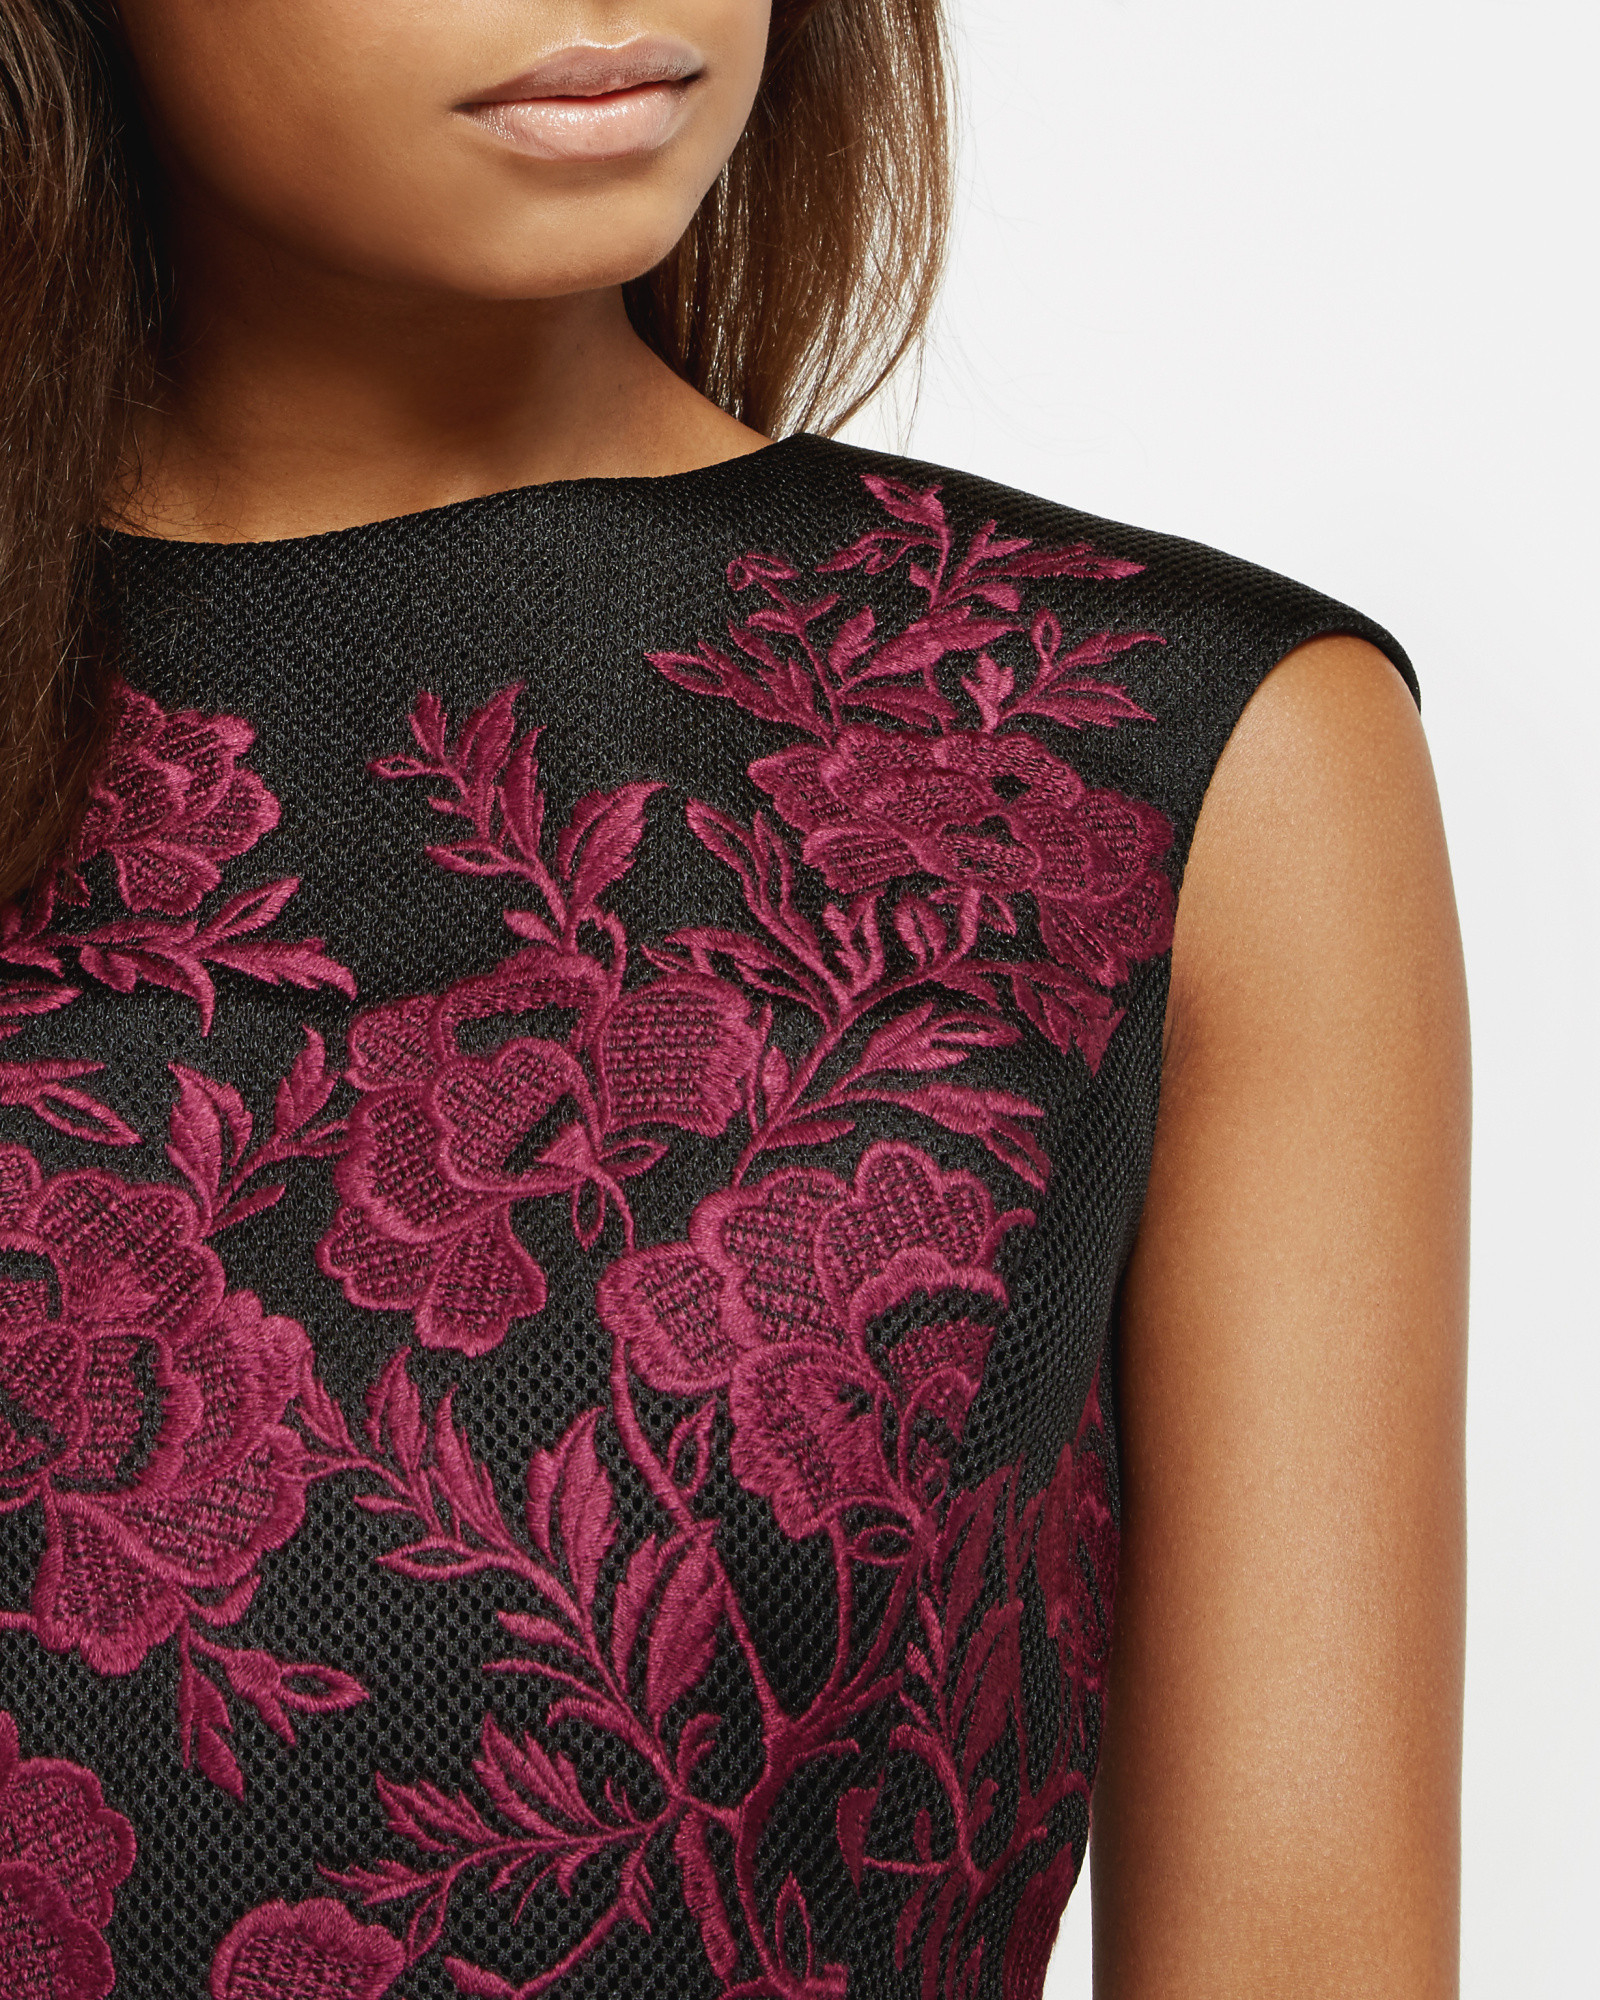 7634d8e074bc1 Ted Baker Embroidered Mesh Lace Cropped Top in Red - Lyst